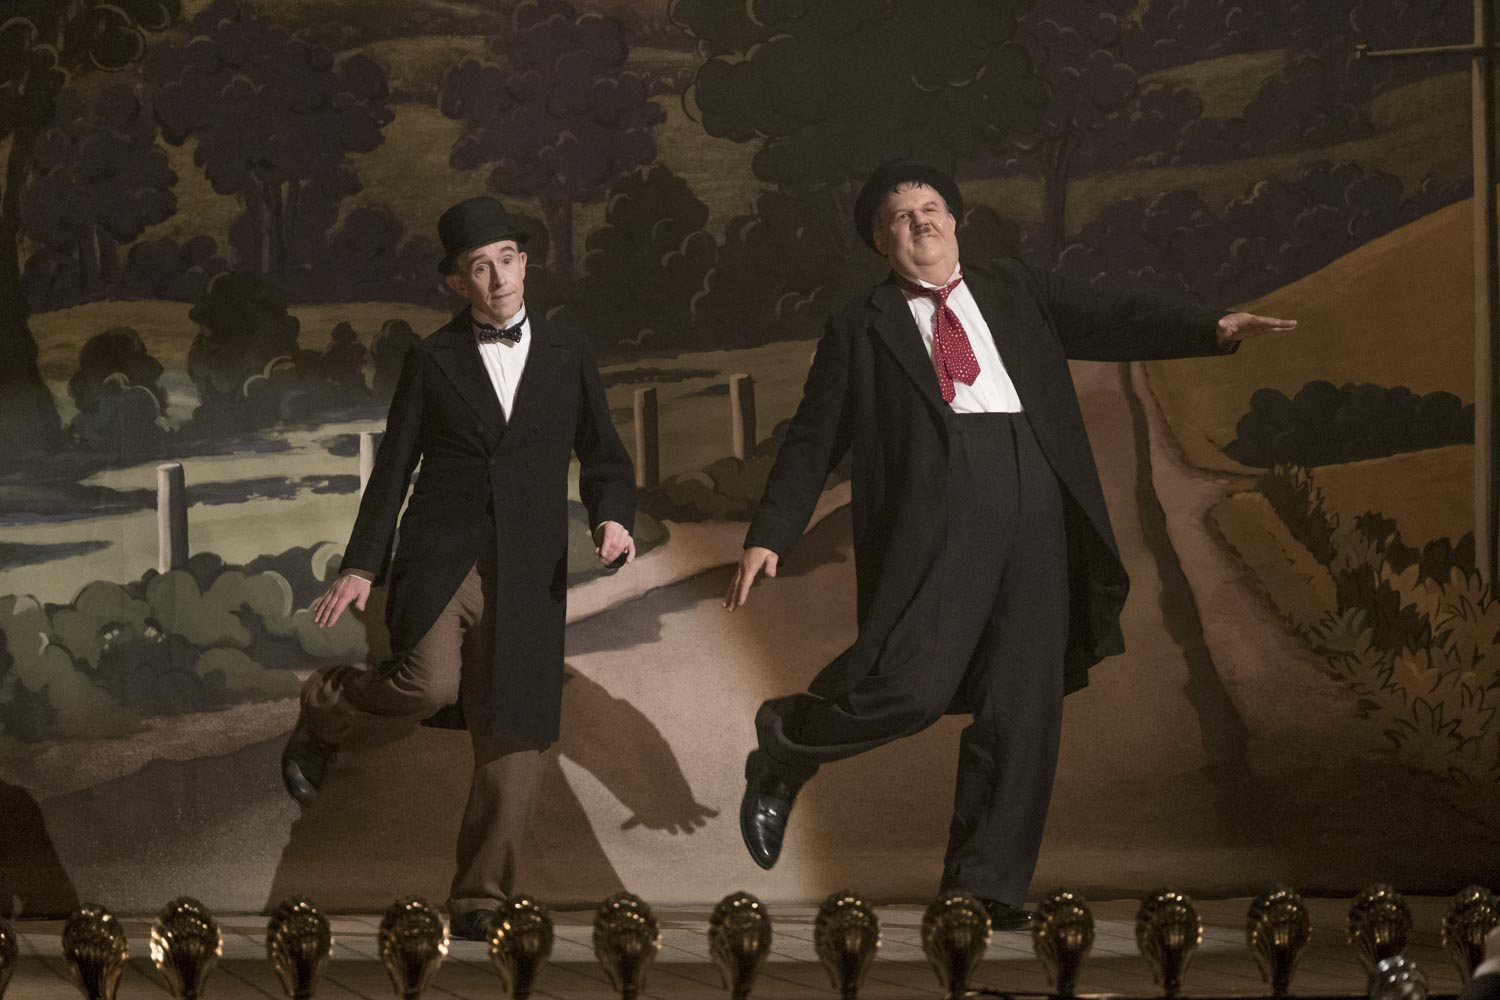 'Stan and Ollie' Celebrates Comedy Legends